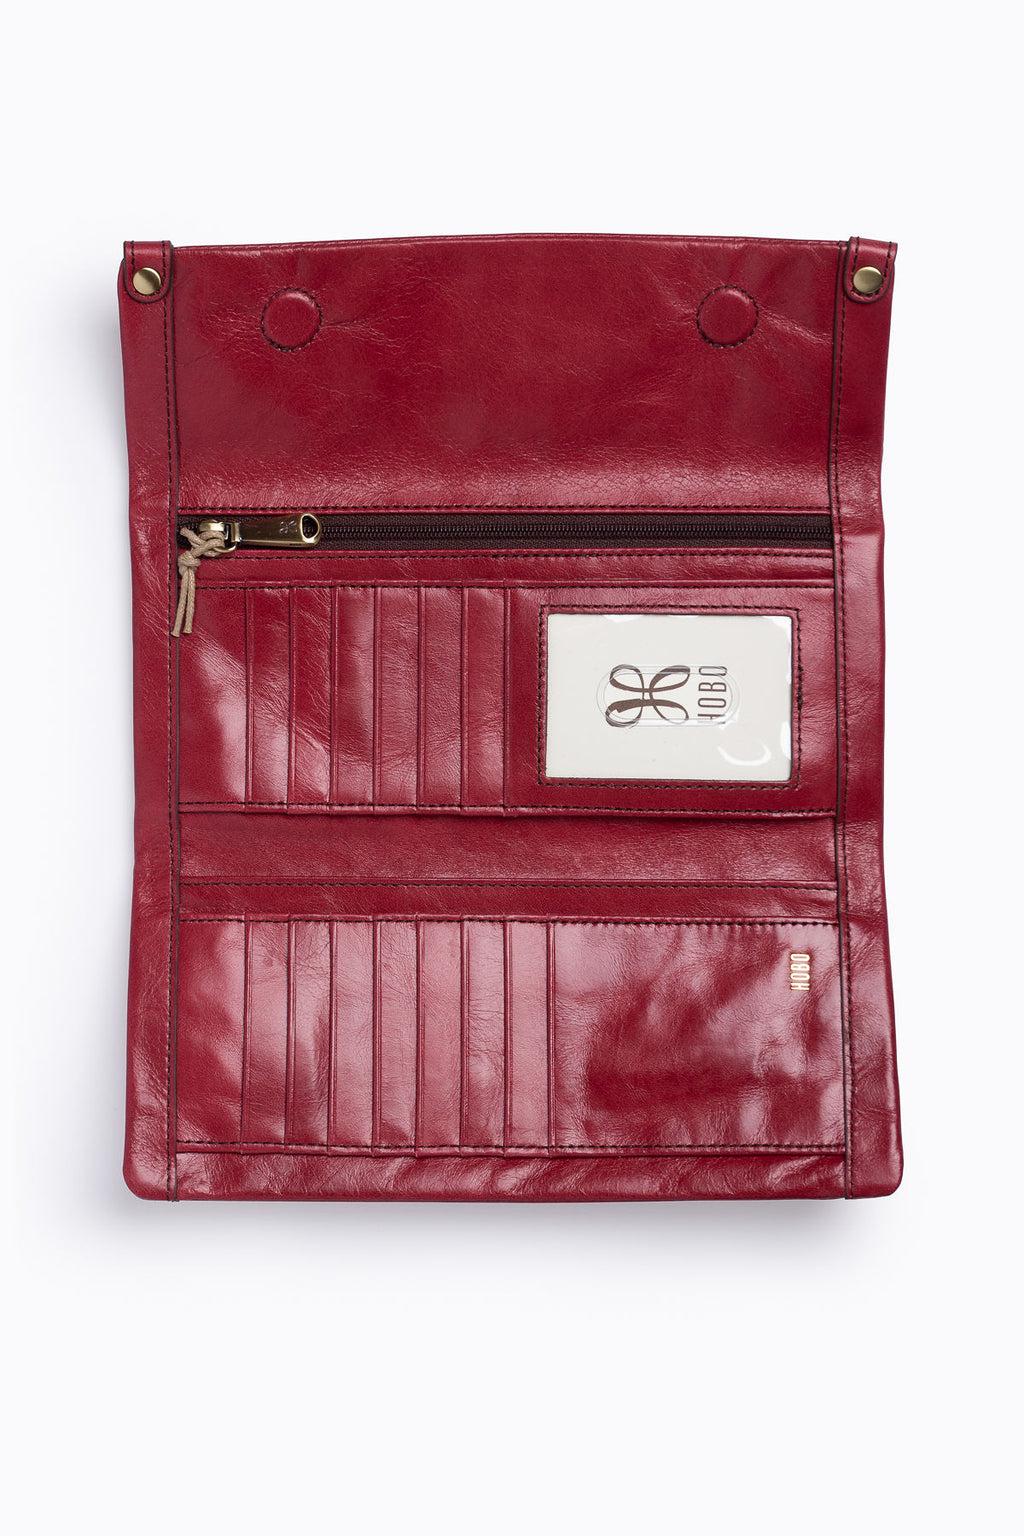 Hobo: Fable Wallet in Vintage Loganberry